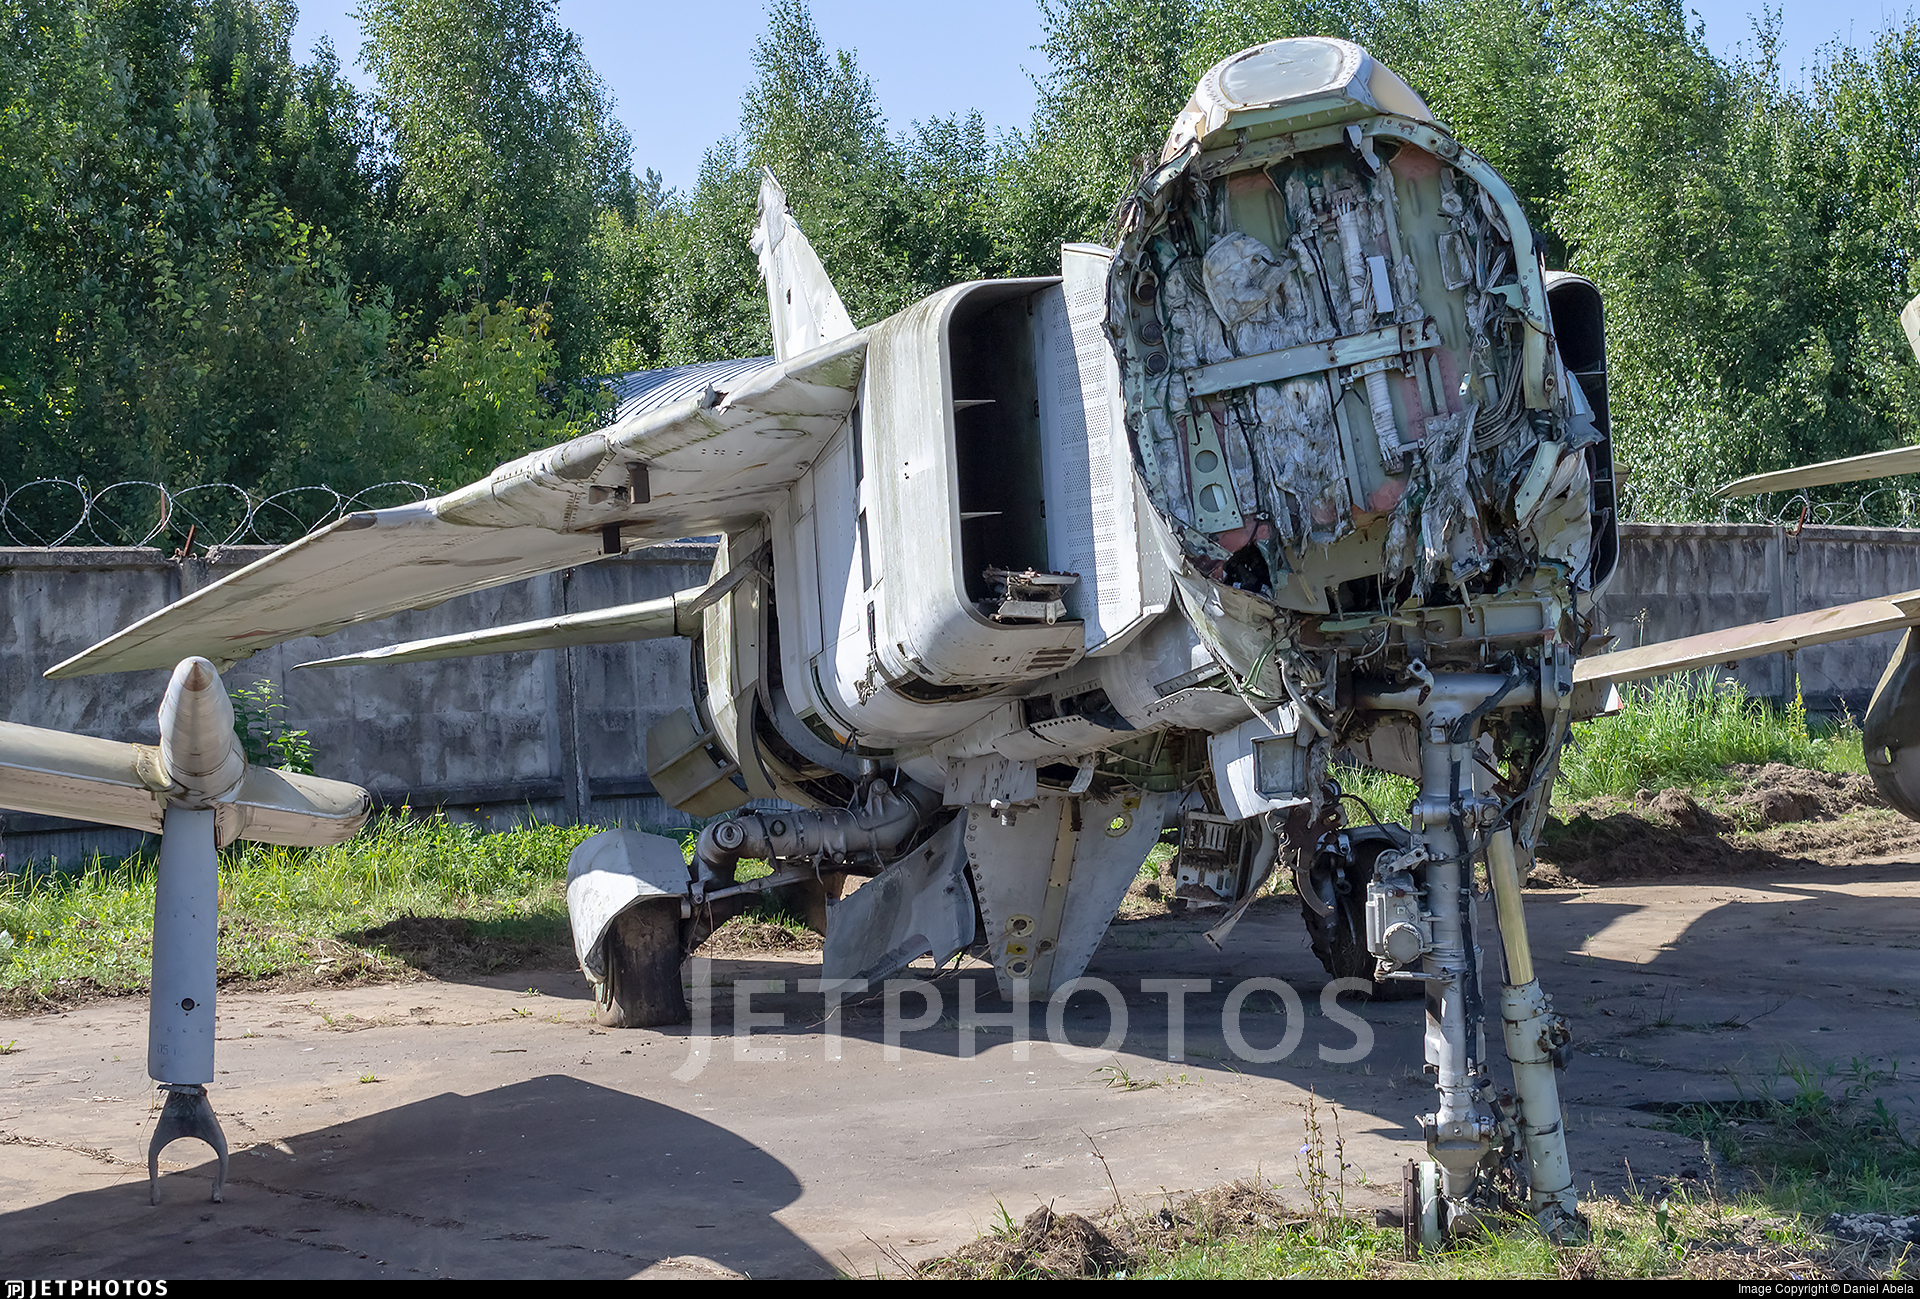 125 - Mikoyan-Gurevich MiG-23ML Flogger G - Soviet Union - Air Force